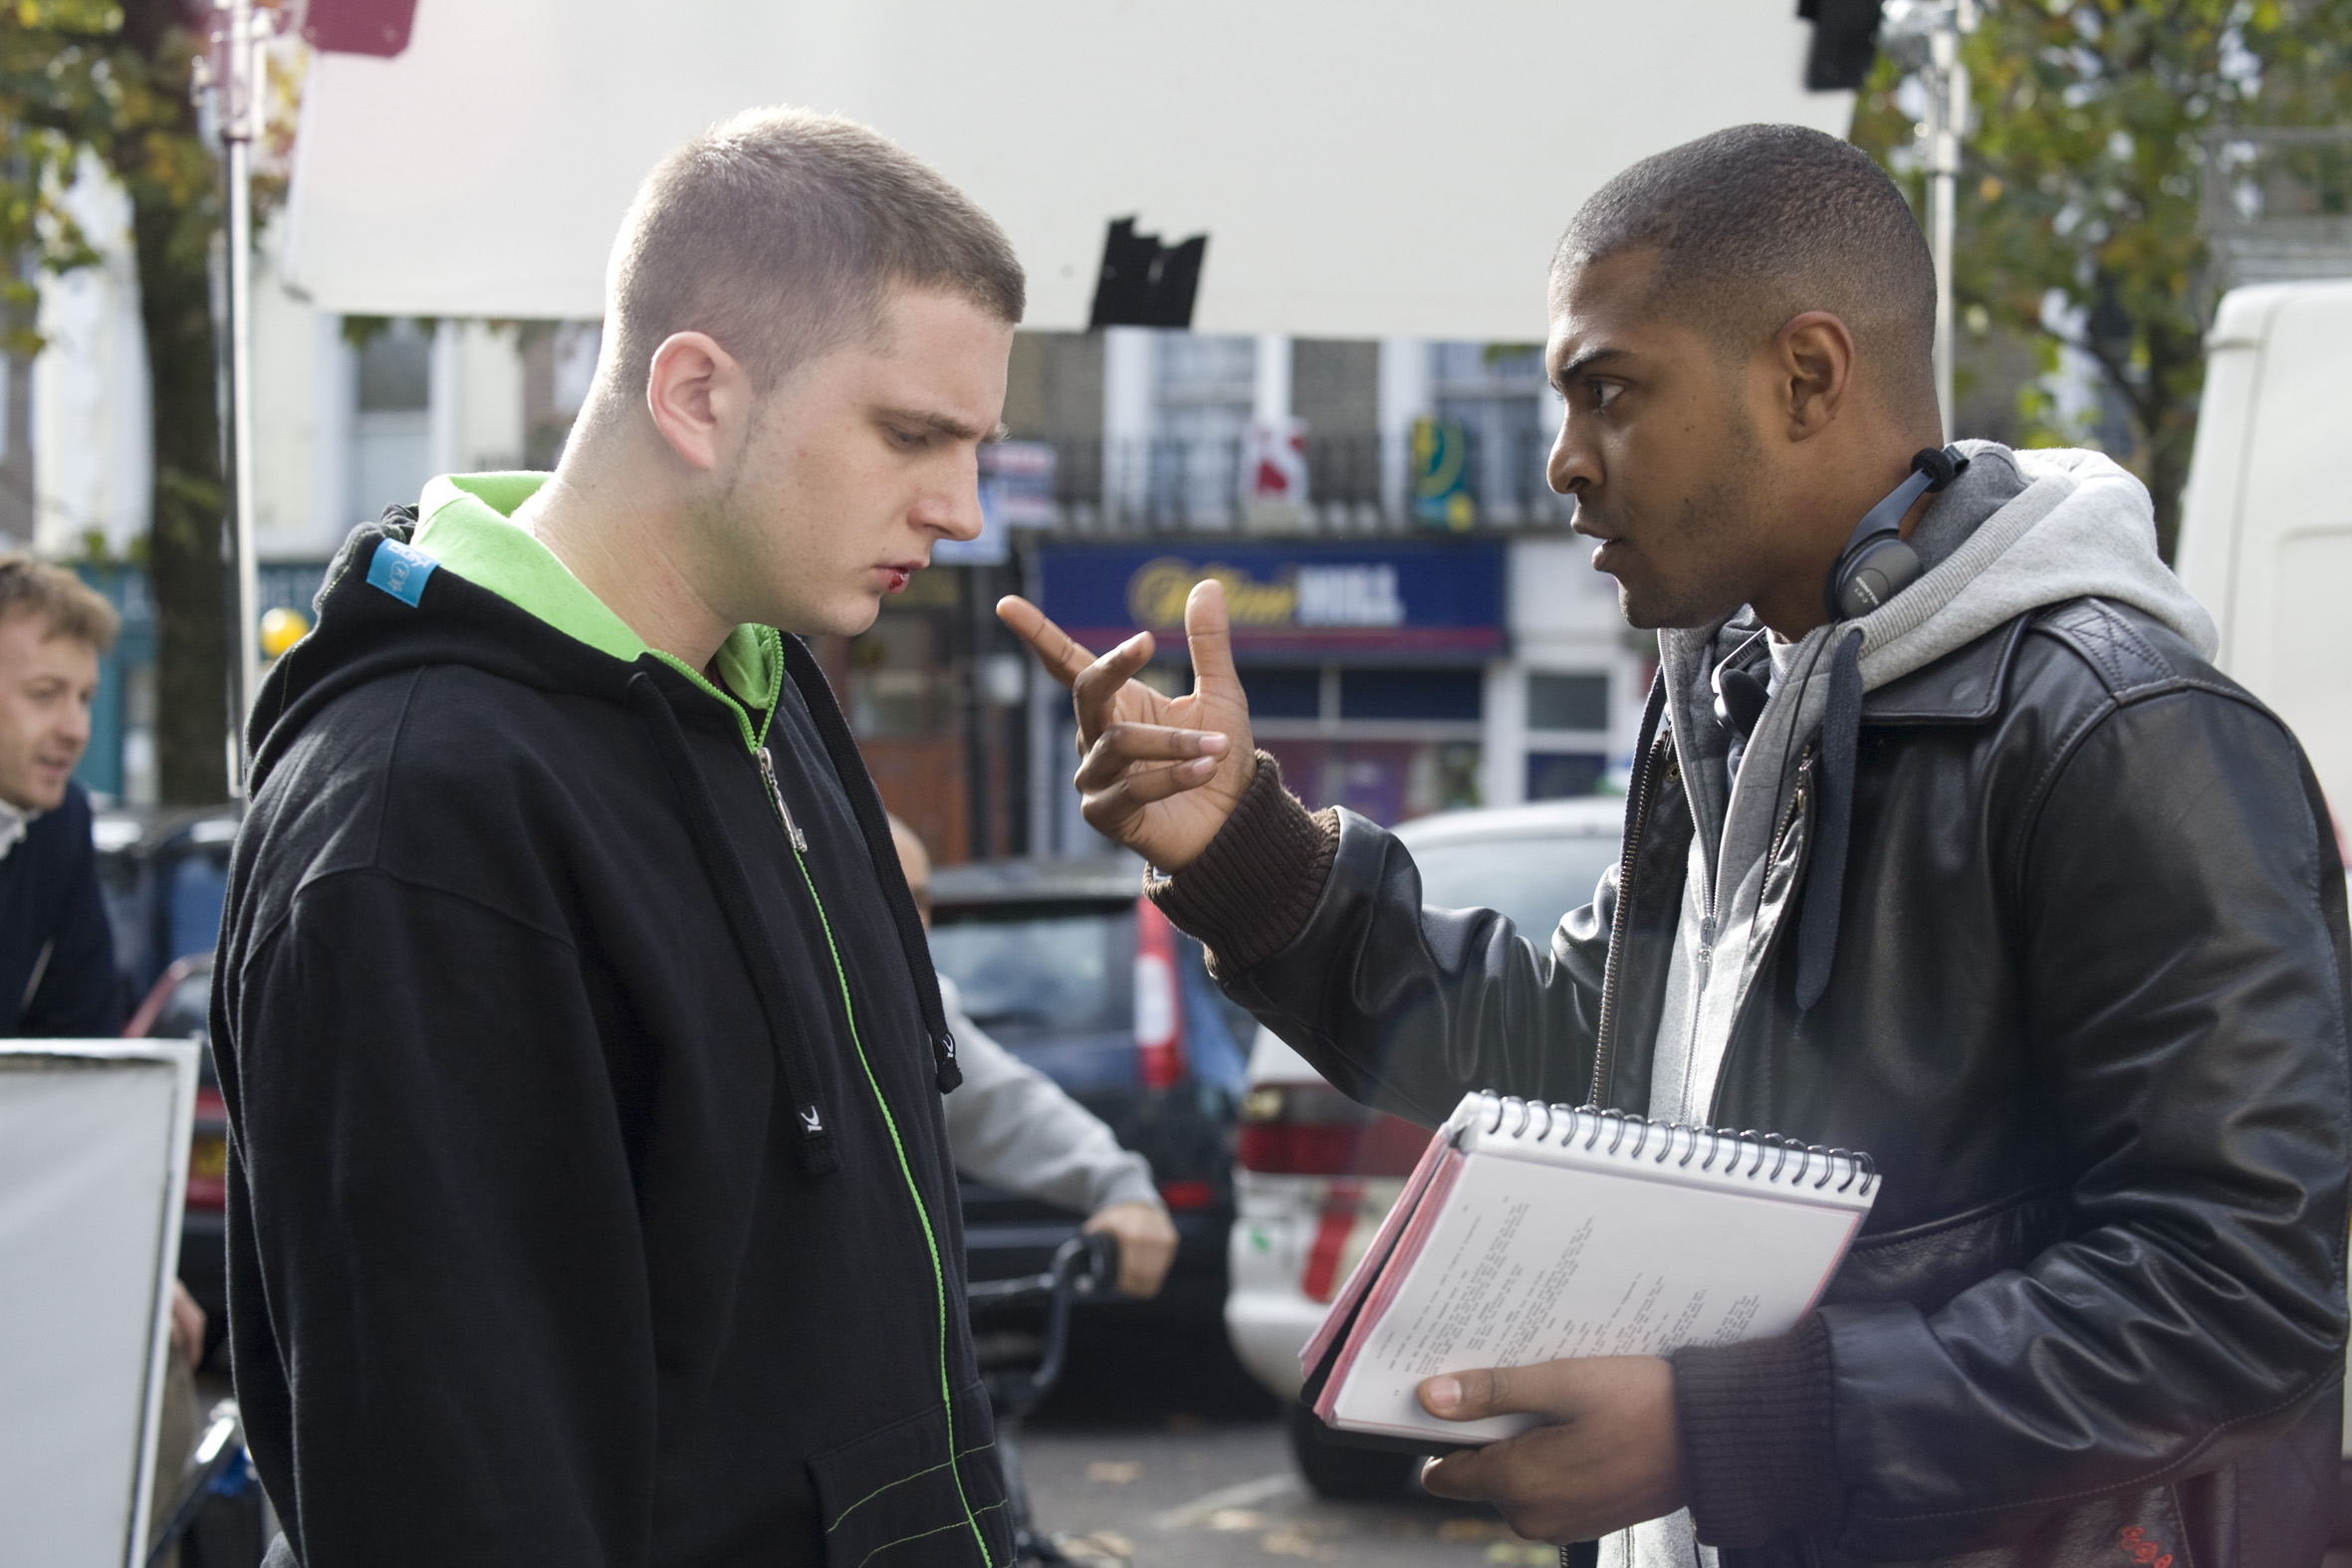 Noel Clarke directing Actor Ben drew on adulthood.